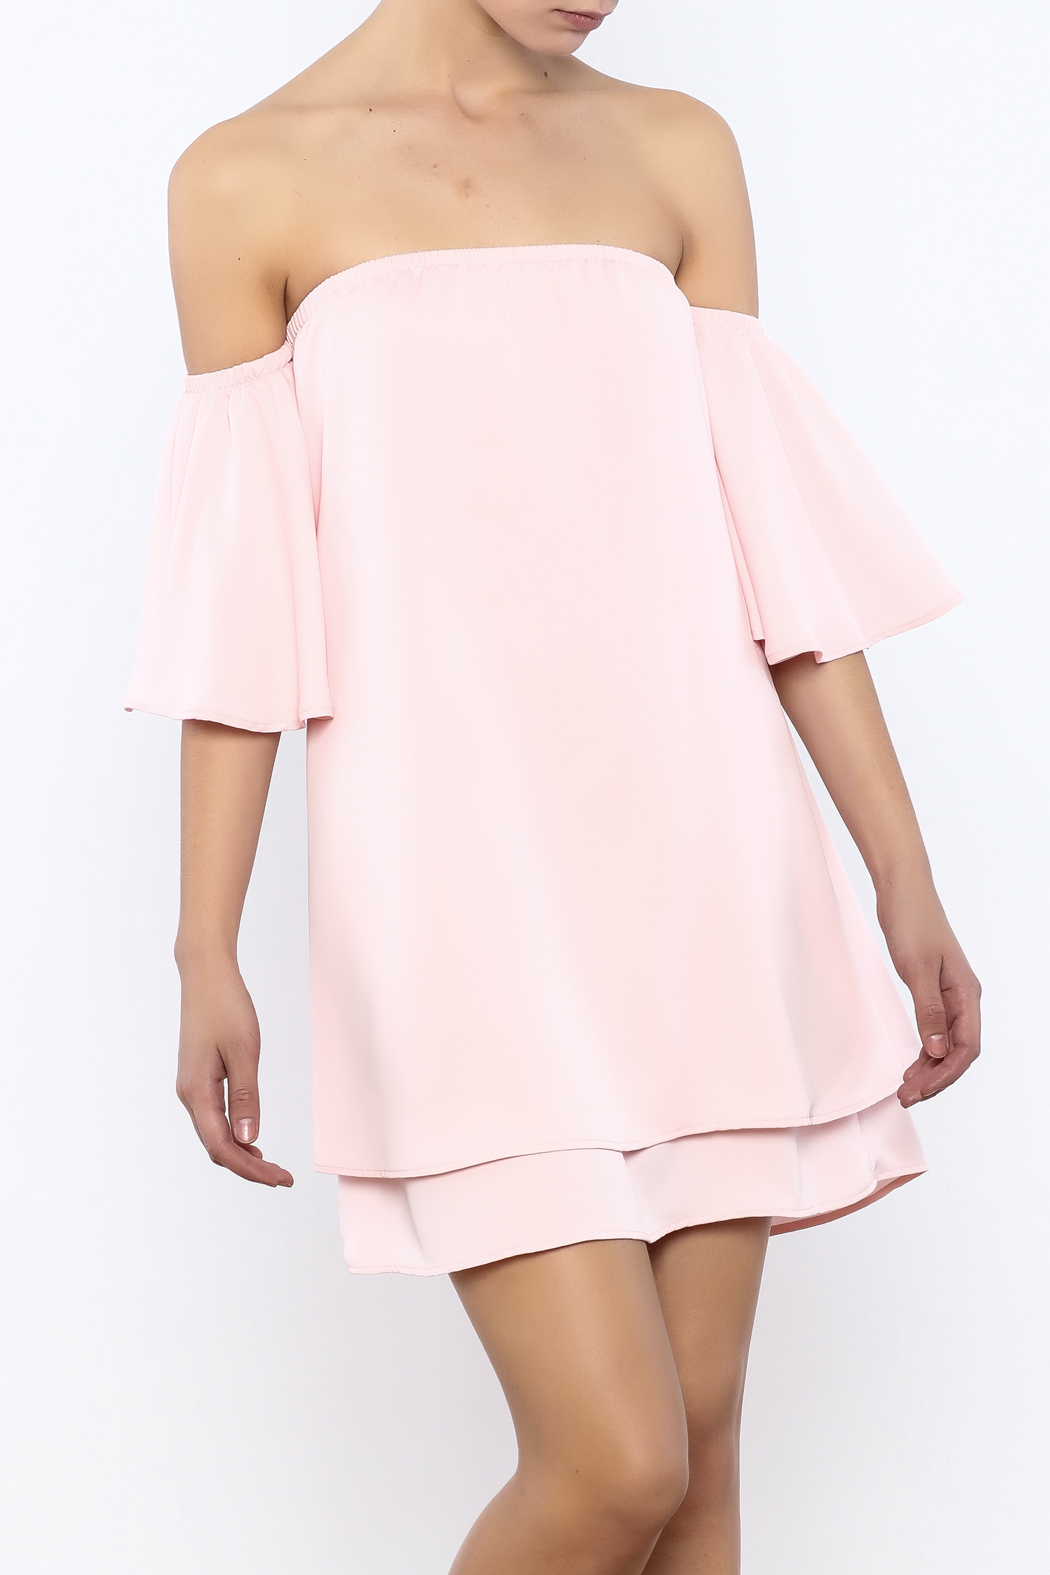 Bacio Soft Pink Top - Front Cropped Image